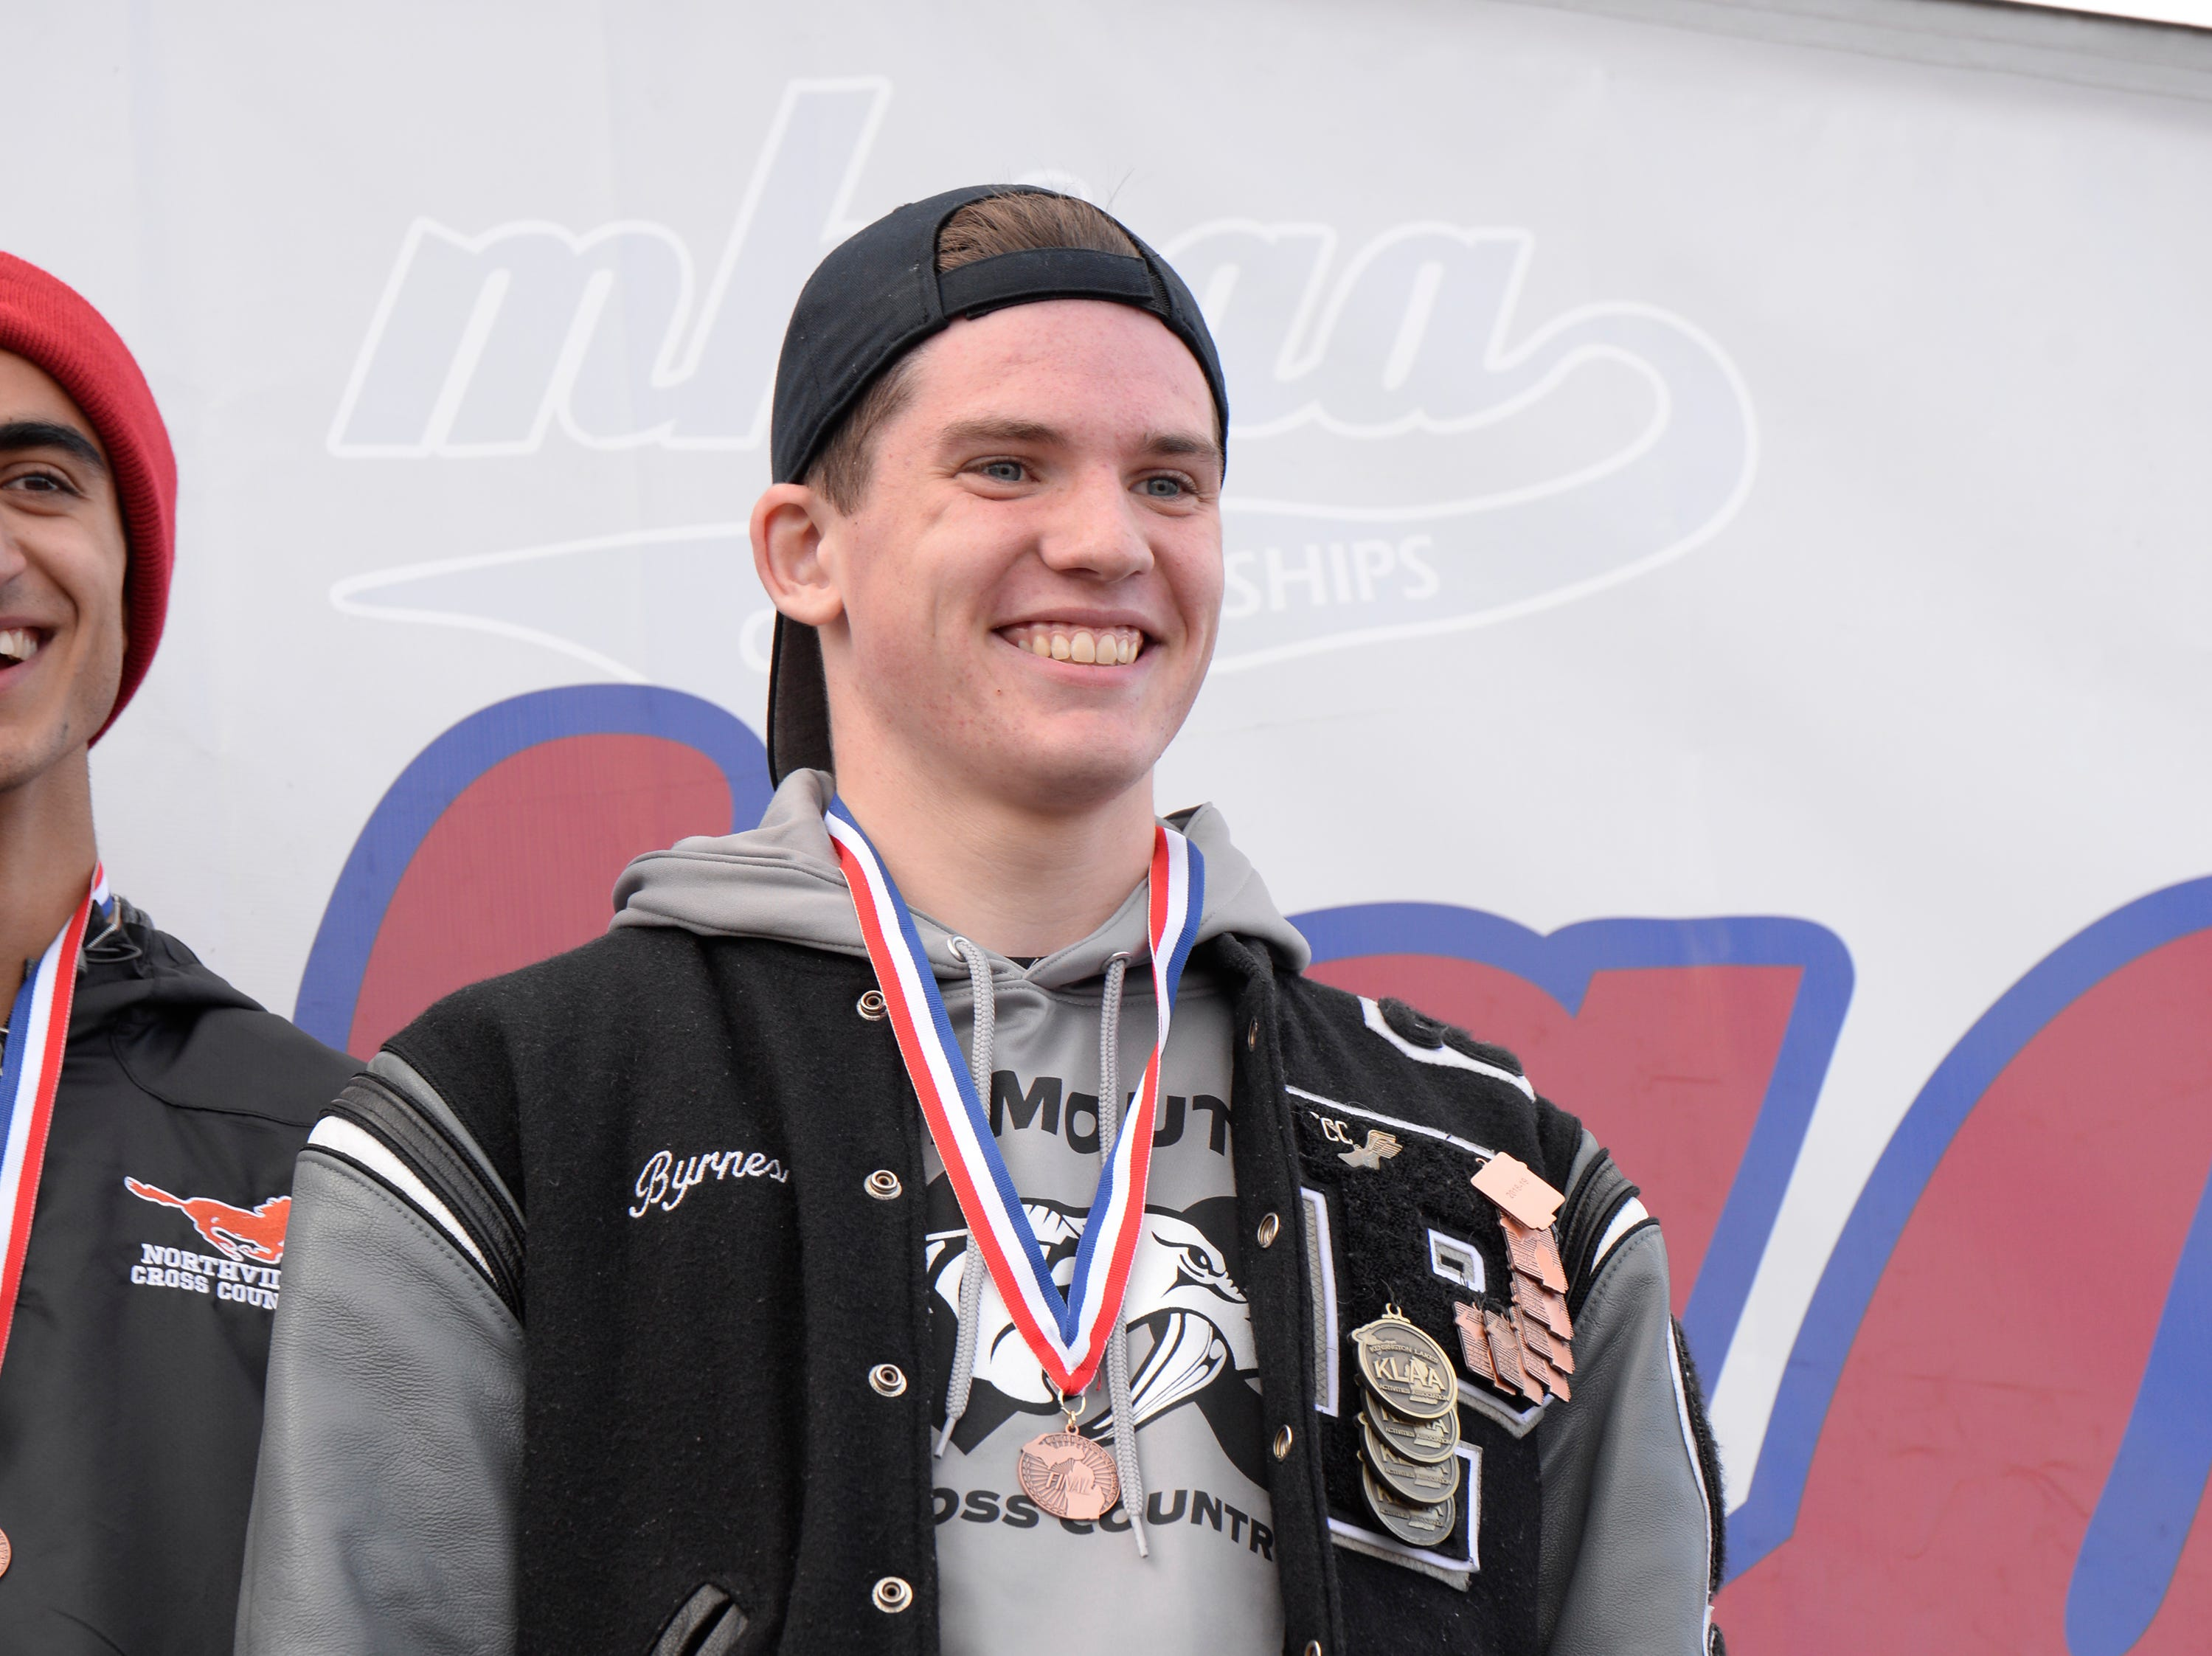 Plymouth's Patrick Brynes finished in 15 th place at the Division 1 2018 cross country finals at Michigan International Speedway.